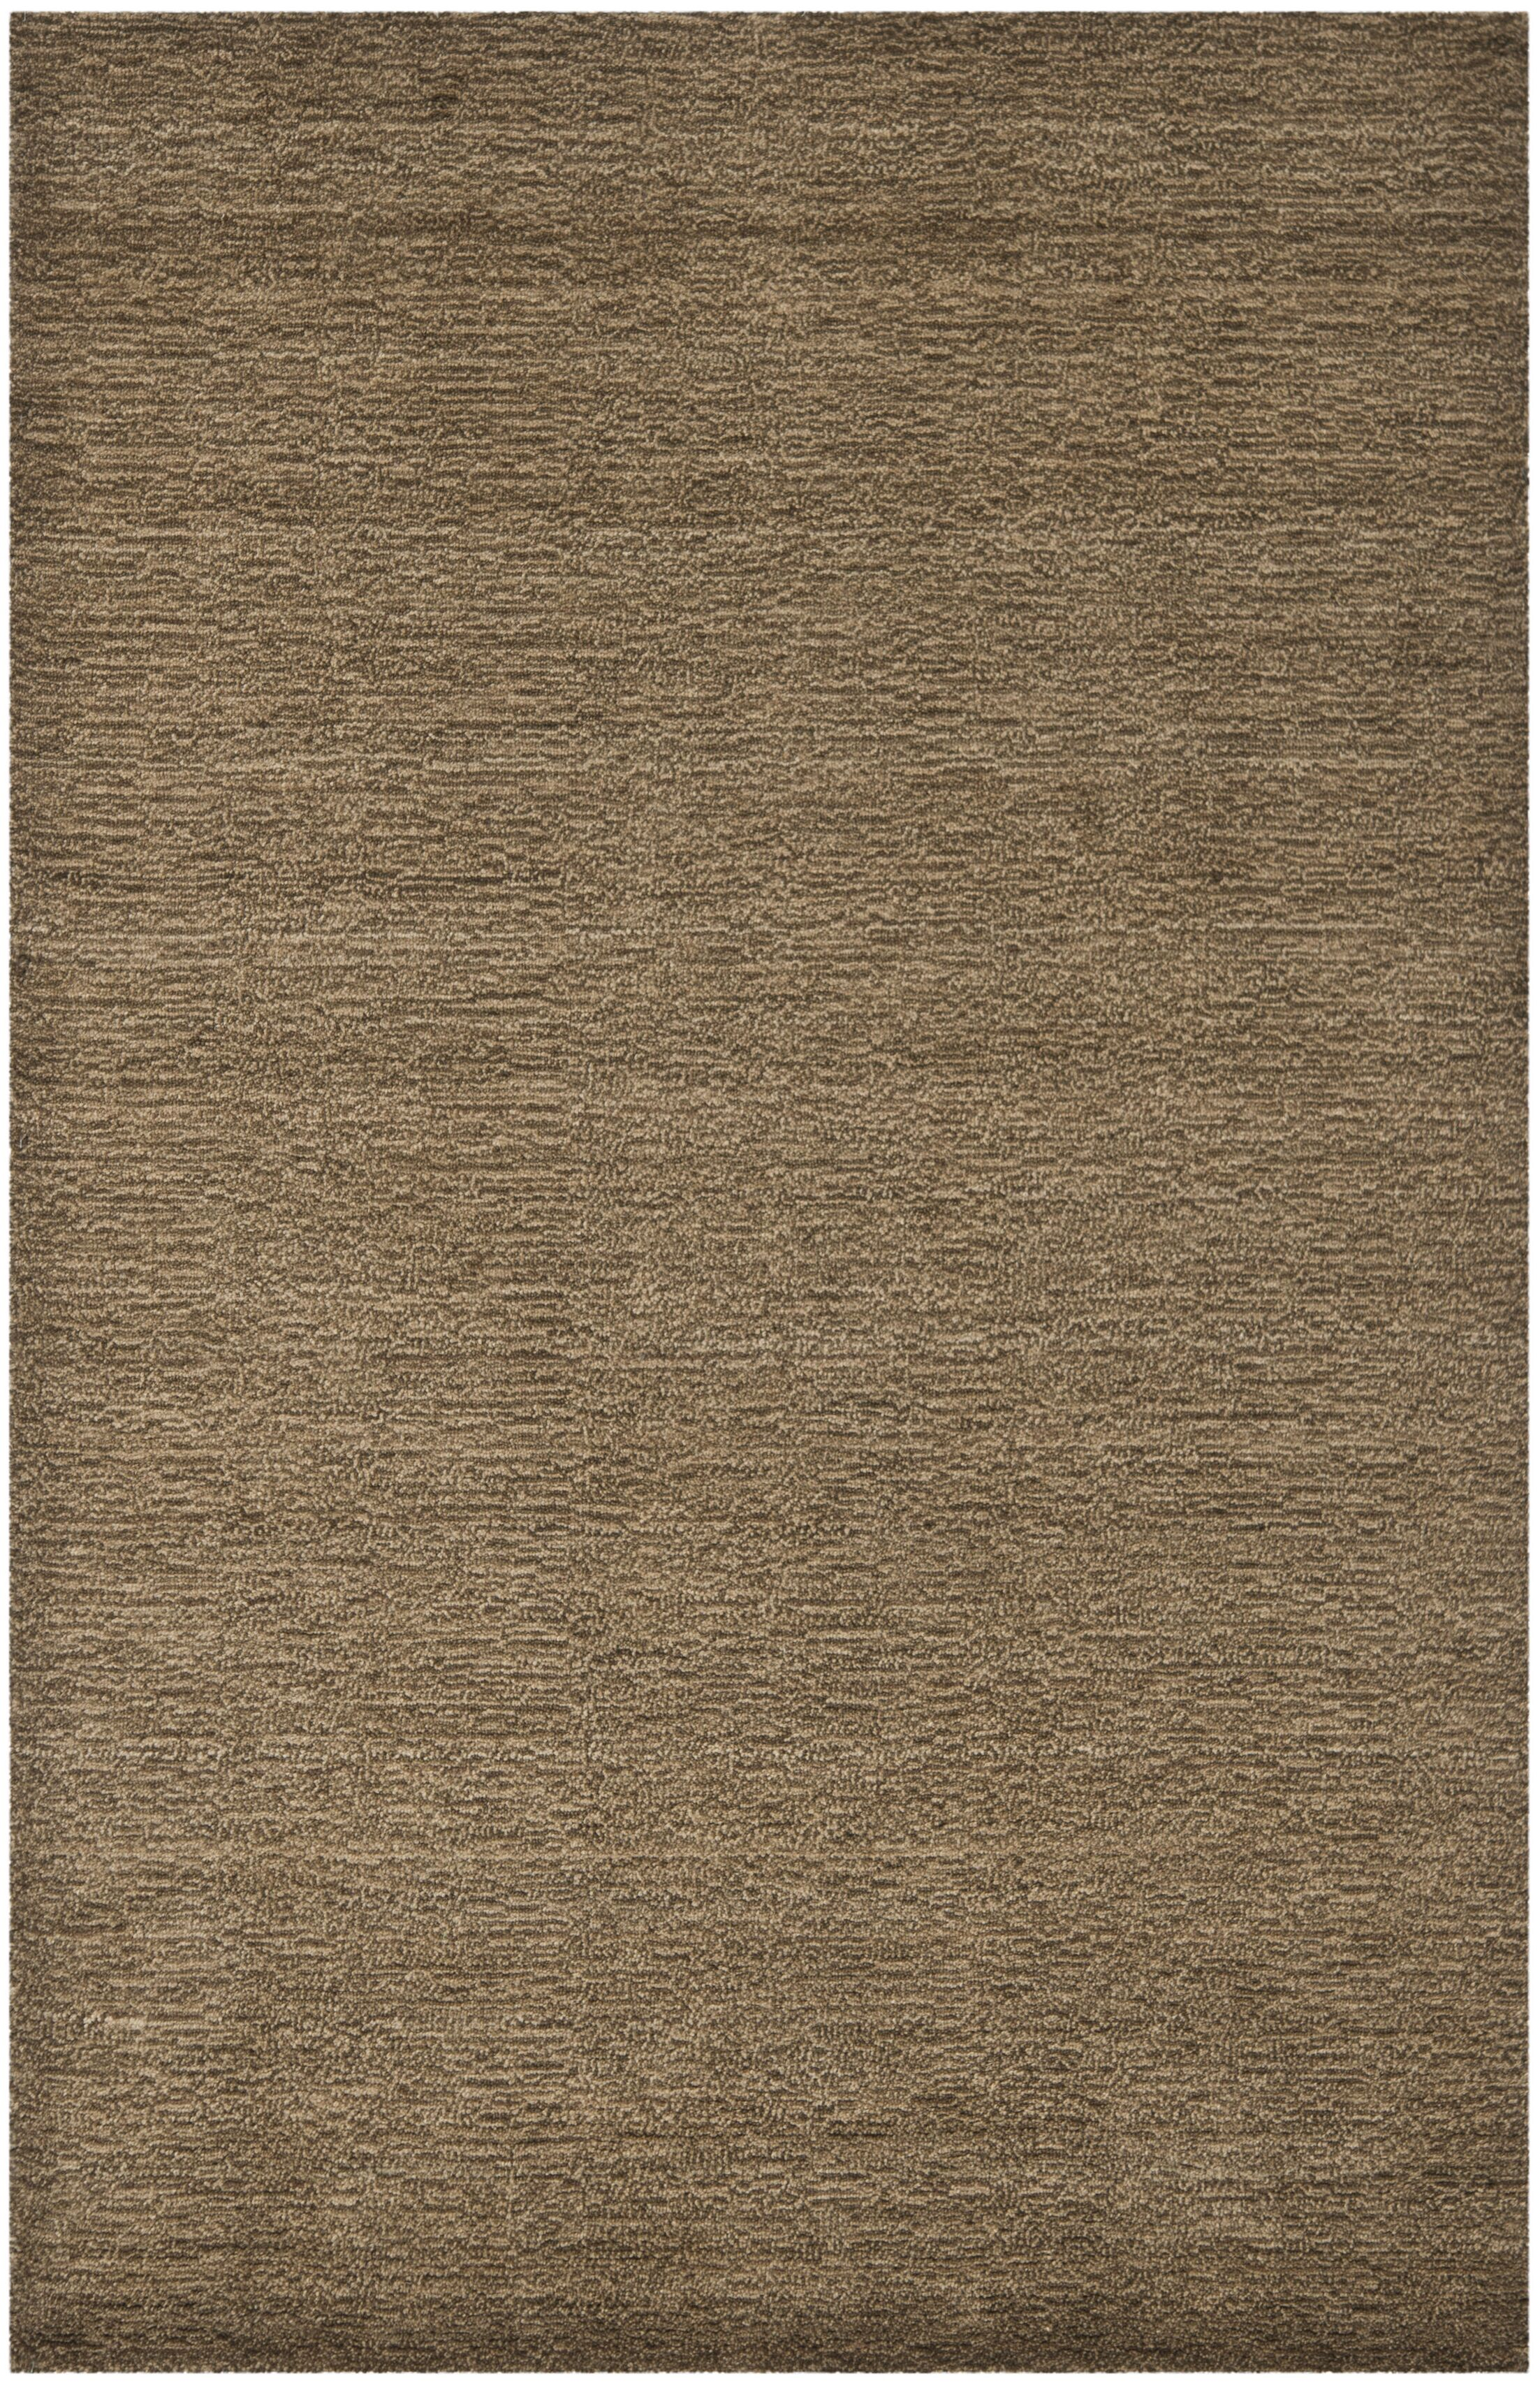 Bargo Brown Solid Area Rug Rug Size: Rectangle 8' x 10'